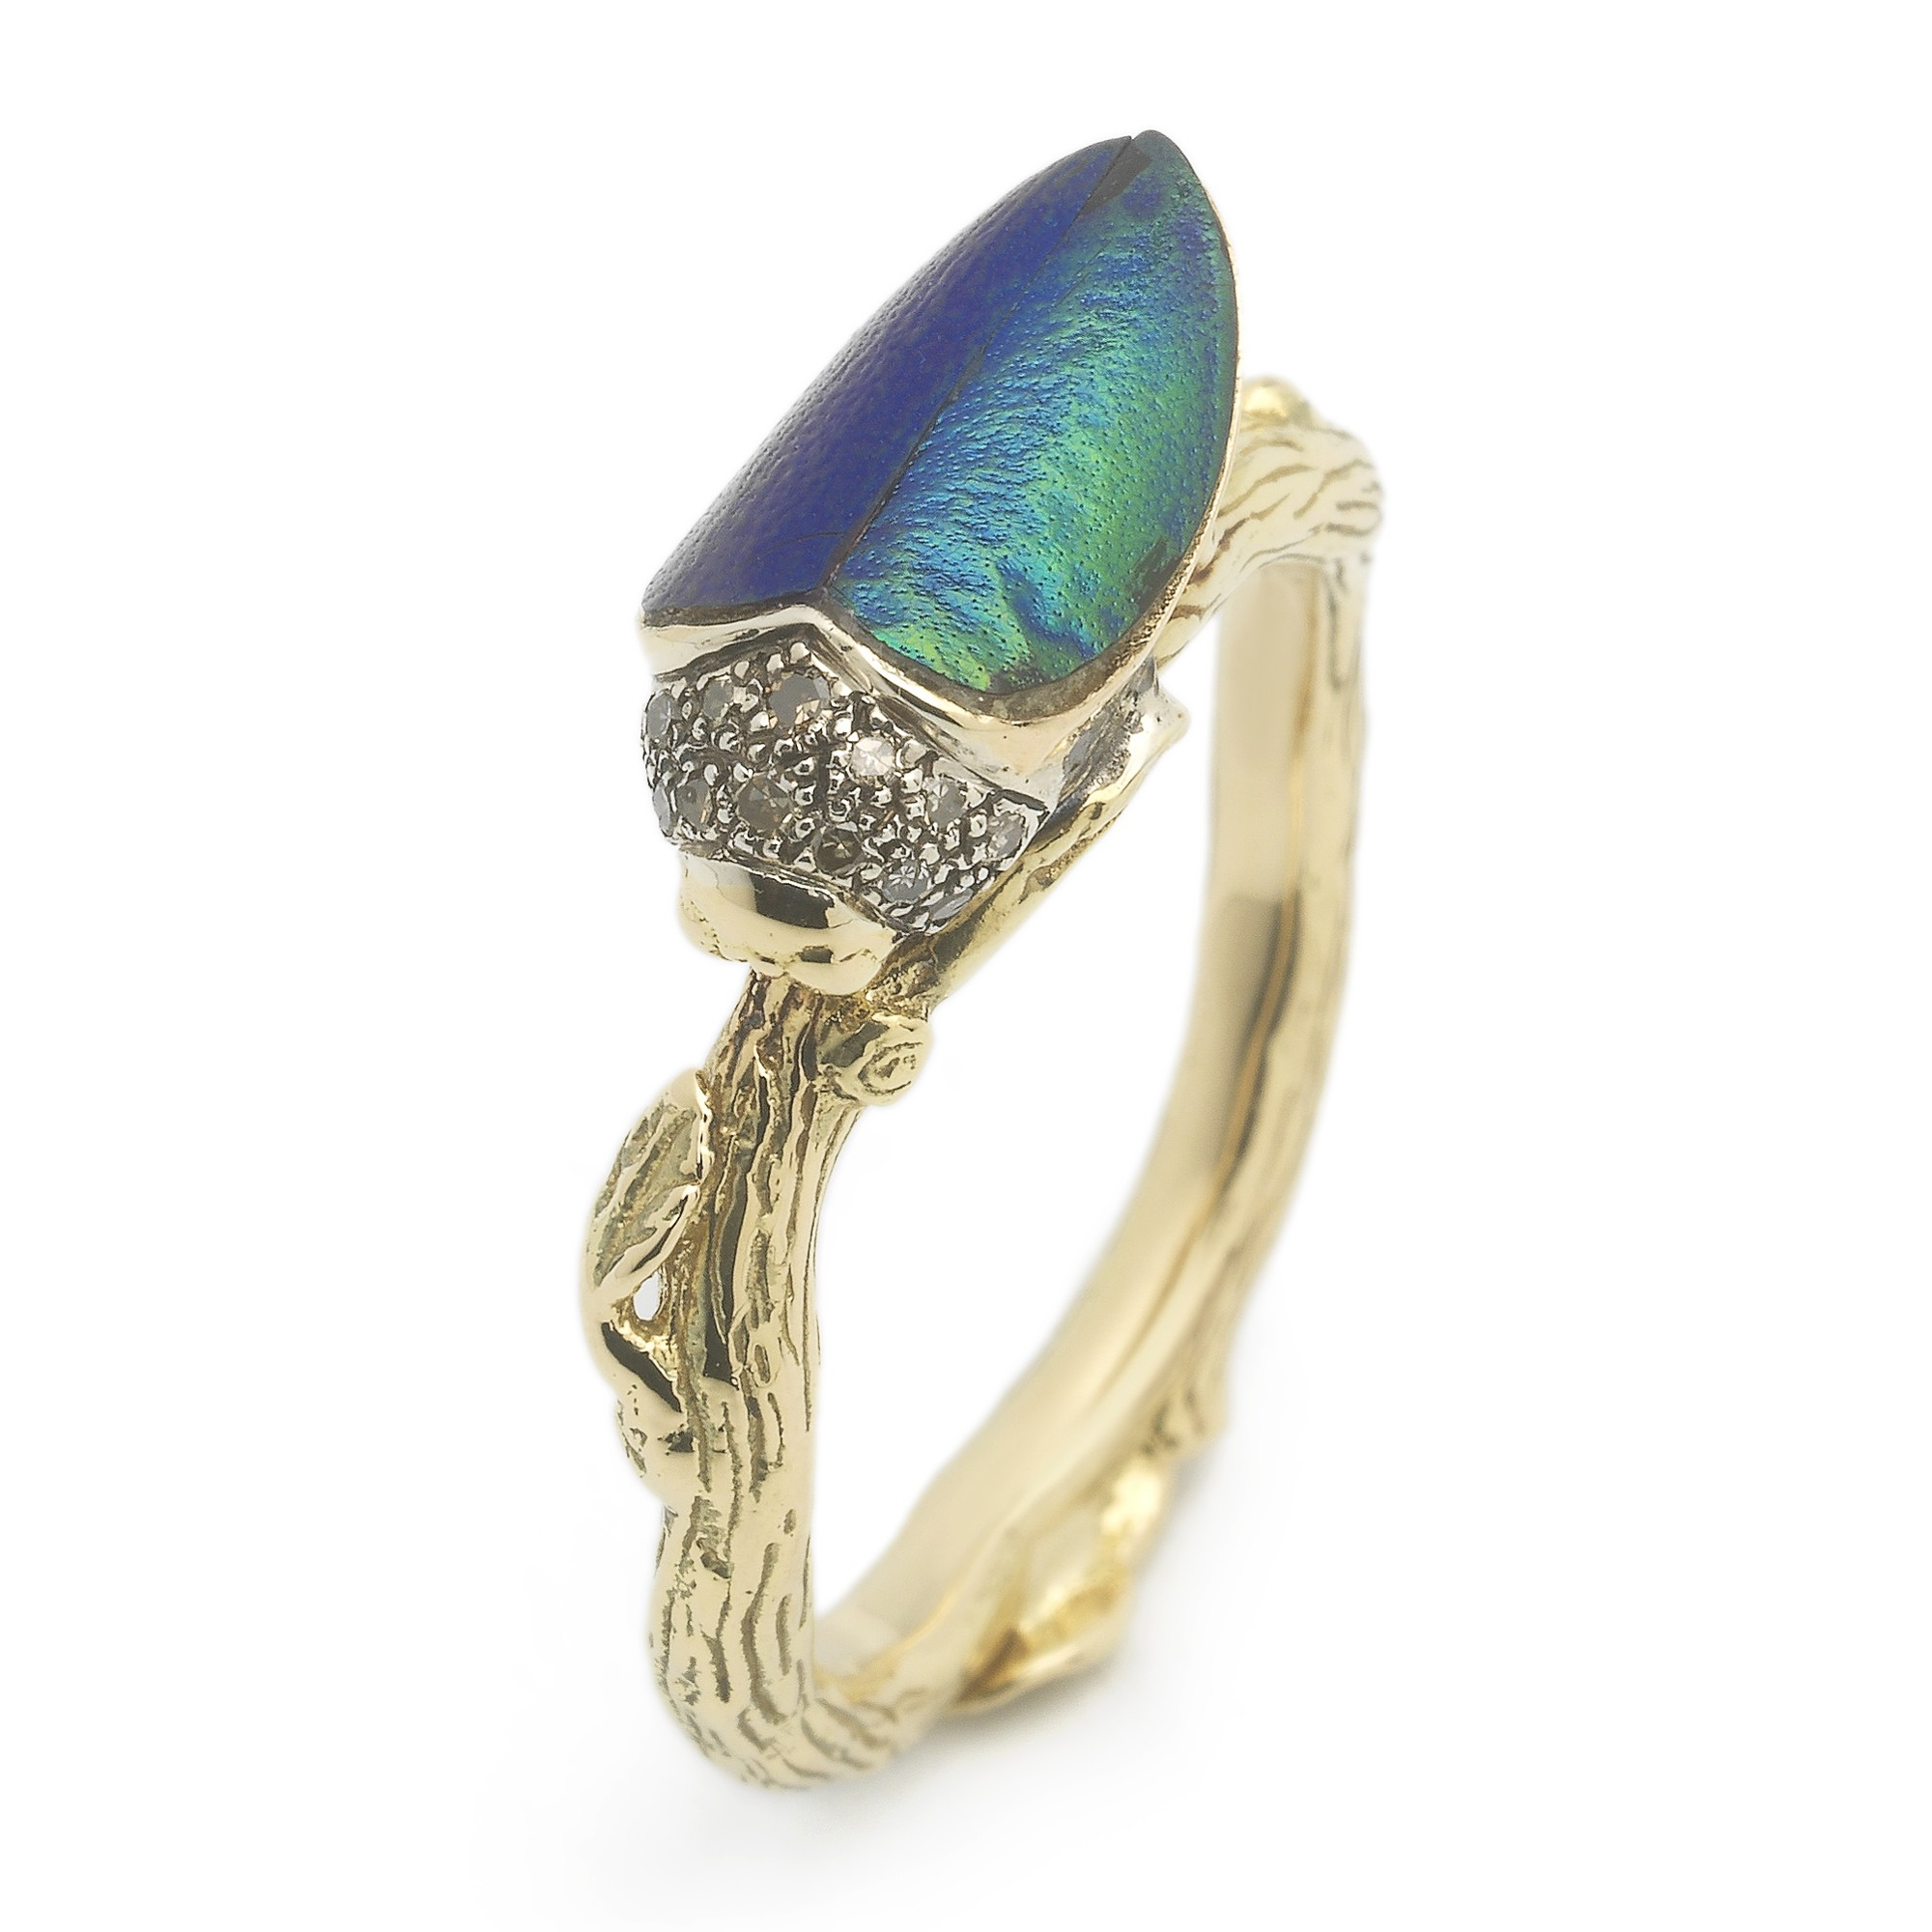 bibi-van-der-velden-scarab-collection-stackable-scarab-ring-sterling-silver-18ct-yellow-gold-scarab-wing-and-brown-diamonds